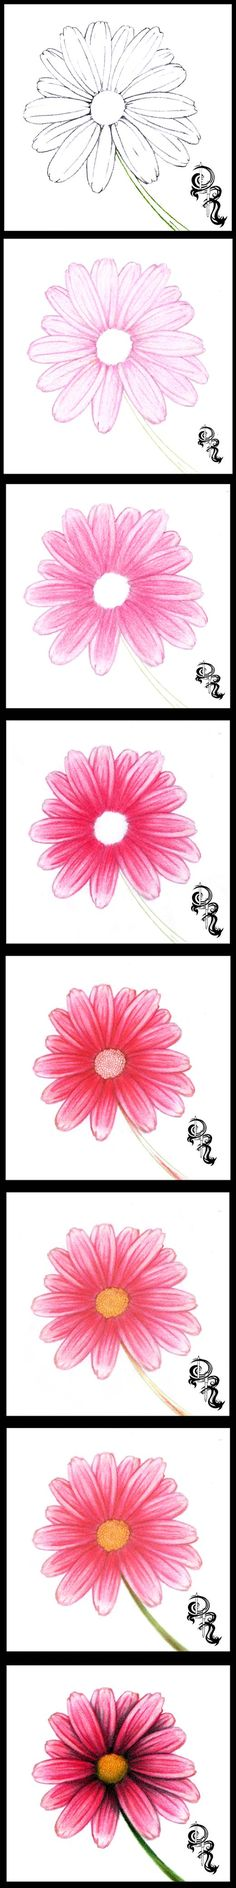 How to Draw a Daisy with Colored Pencils A step-by-step image of a colored pencil #artlesson by Derrick Rathgeber. Click the image for full details instructions on my blog page. http://derricktheartist.blogspot.com/2013/07/how-to-color-daisy-with-colored-pencils.html